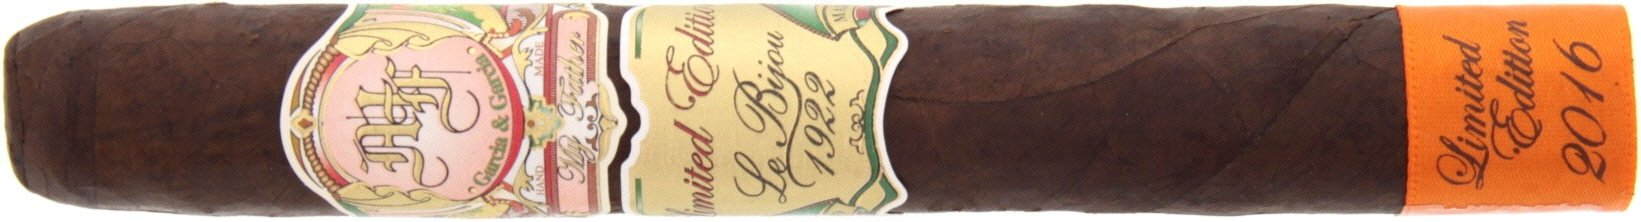 Don Pepin Le Bijou 1922 Limited Edition 2016 Toro